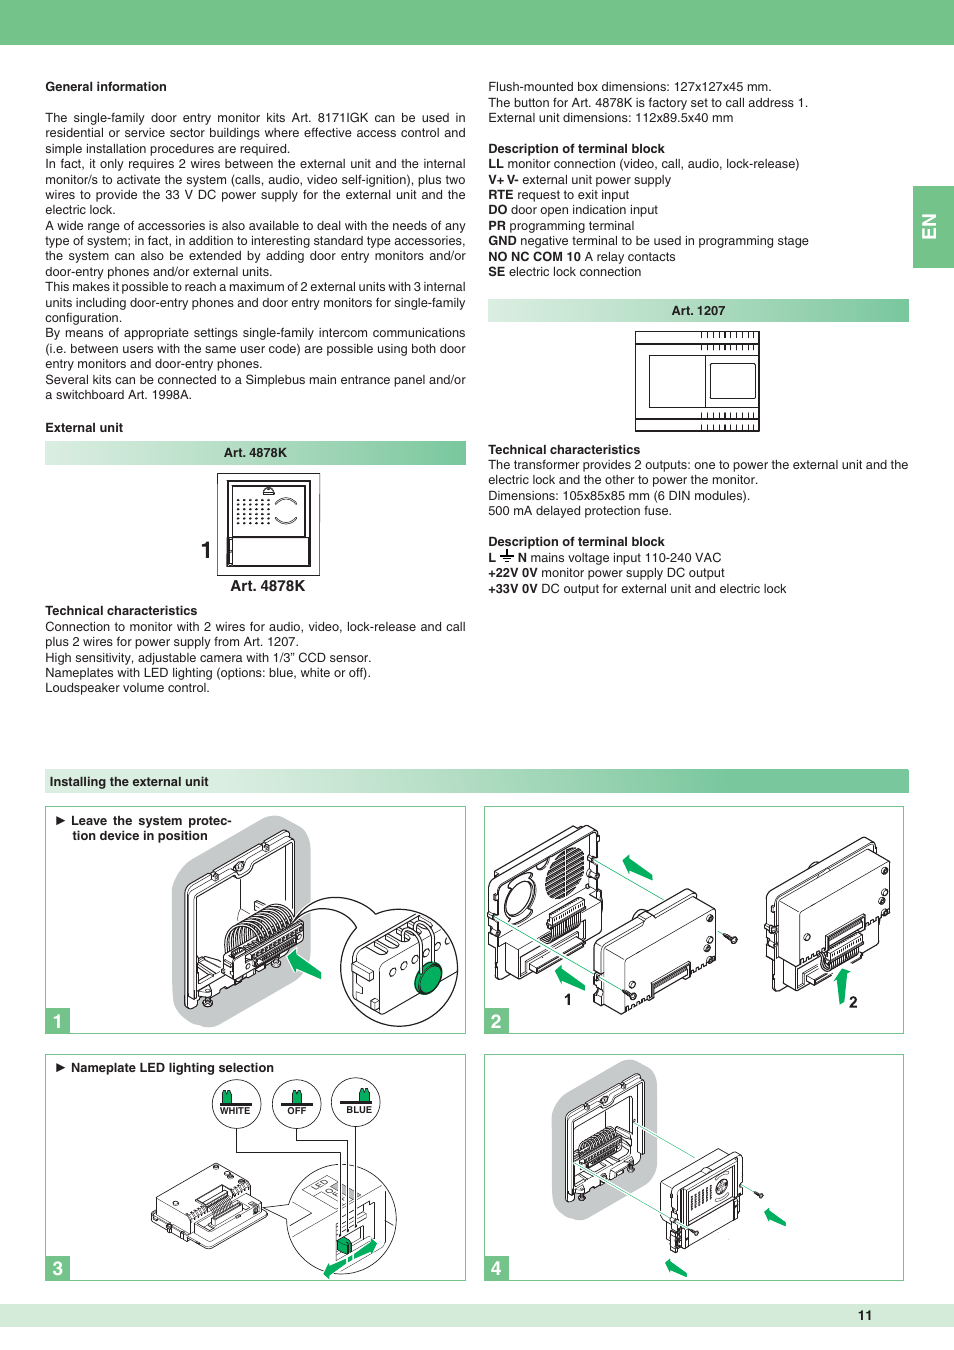 Comelit Simplebus Wiring Diagram Diagrams Videx Smart 1 Mt 8171igk User Manual Page 11 72 Basic Electrical